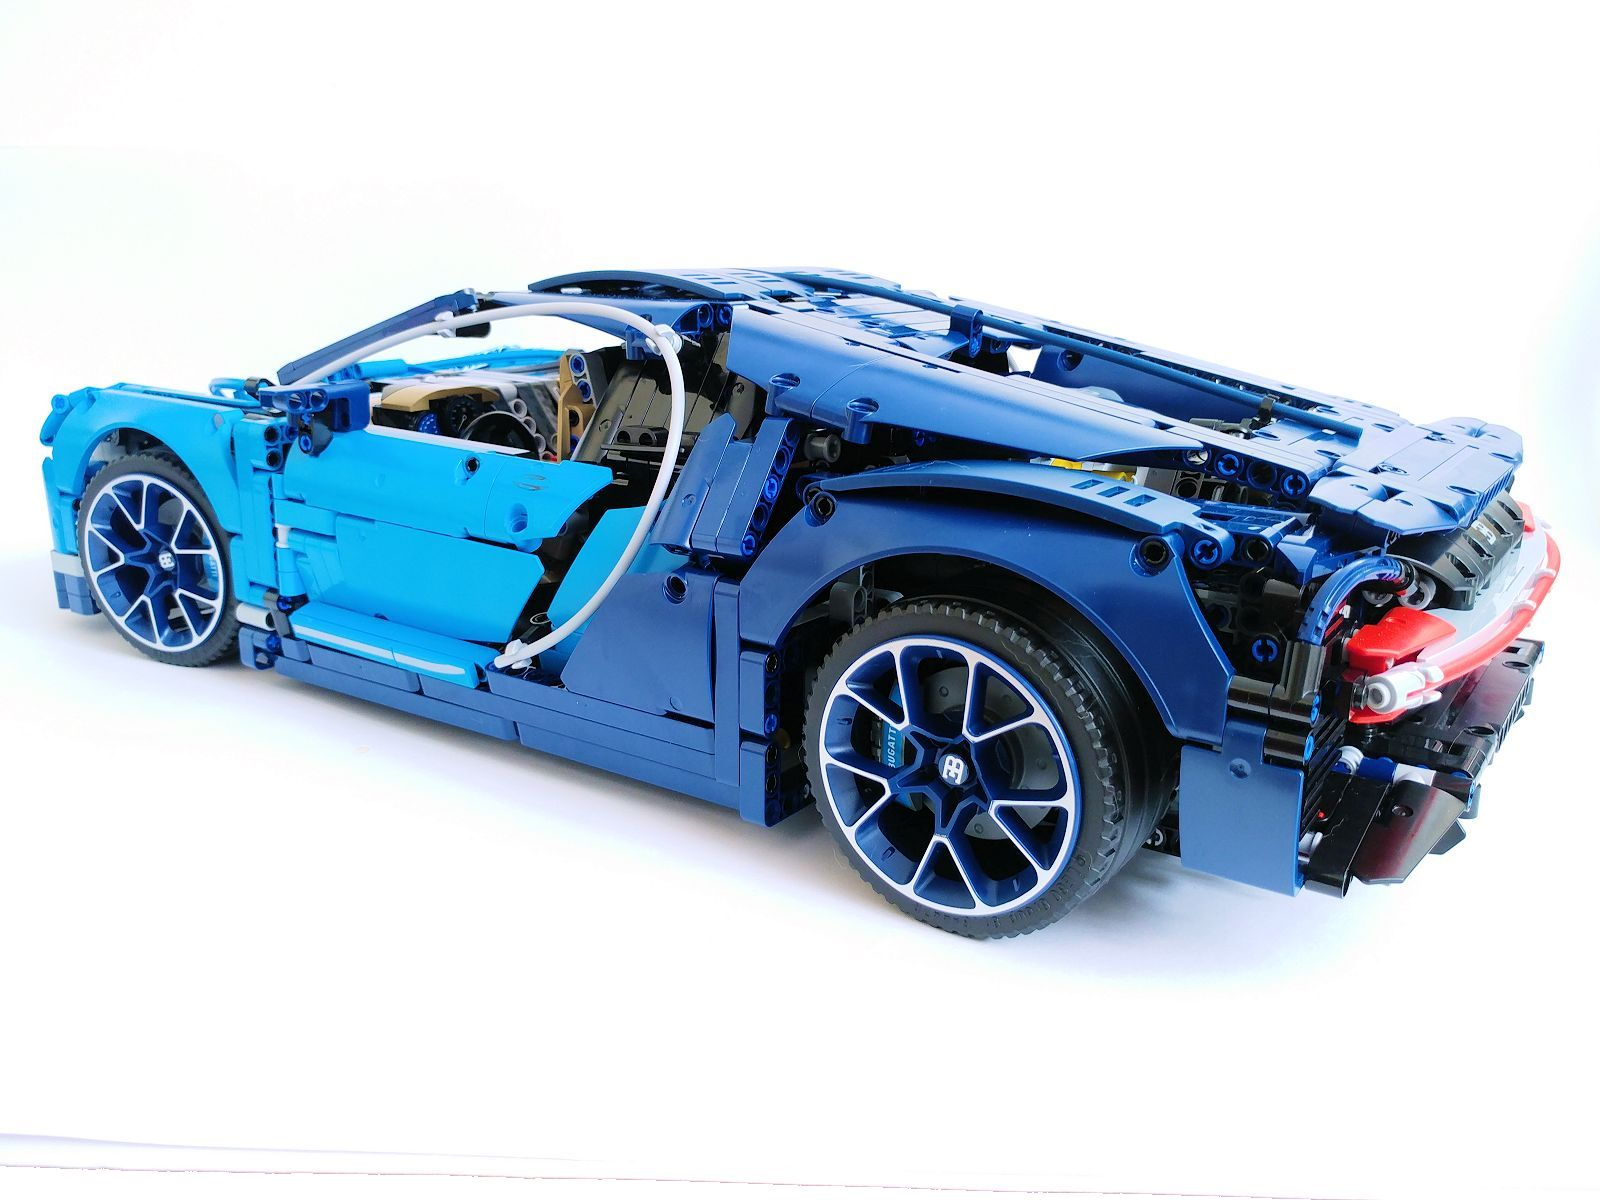 After A Period Of Secrecy And Rumours Lego Technic Set 42083 Bugatti Chiron Was Unveiled On 1st June 2018 At The House With Presences Top